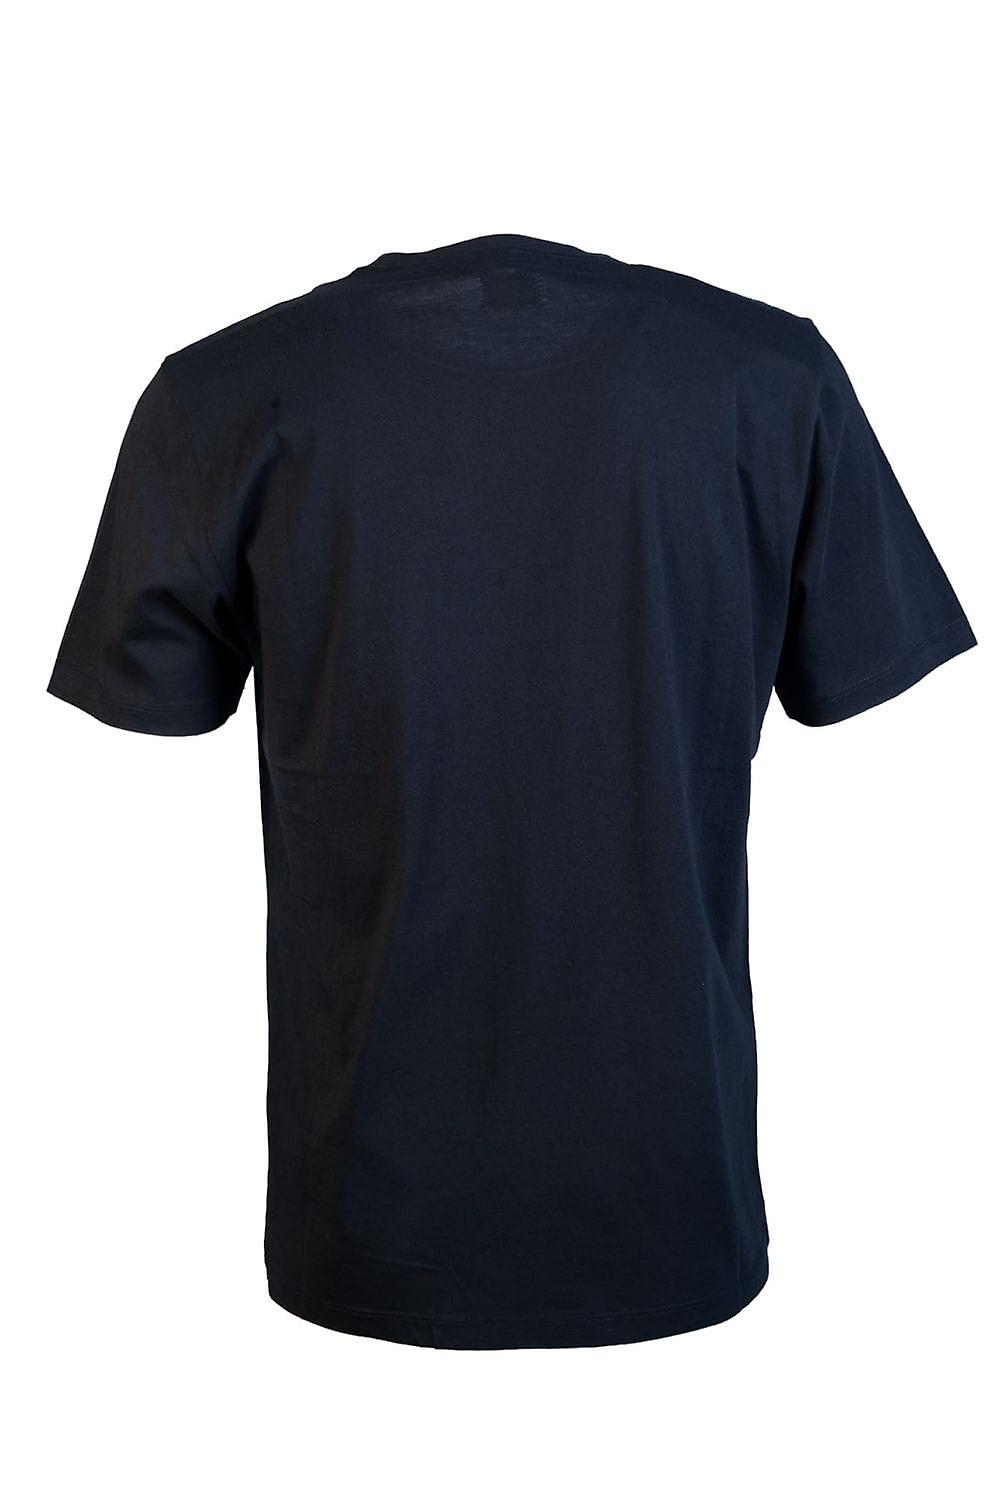 CP Company Round Neck T Shirt MTS157A 005100W